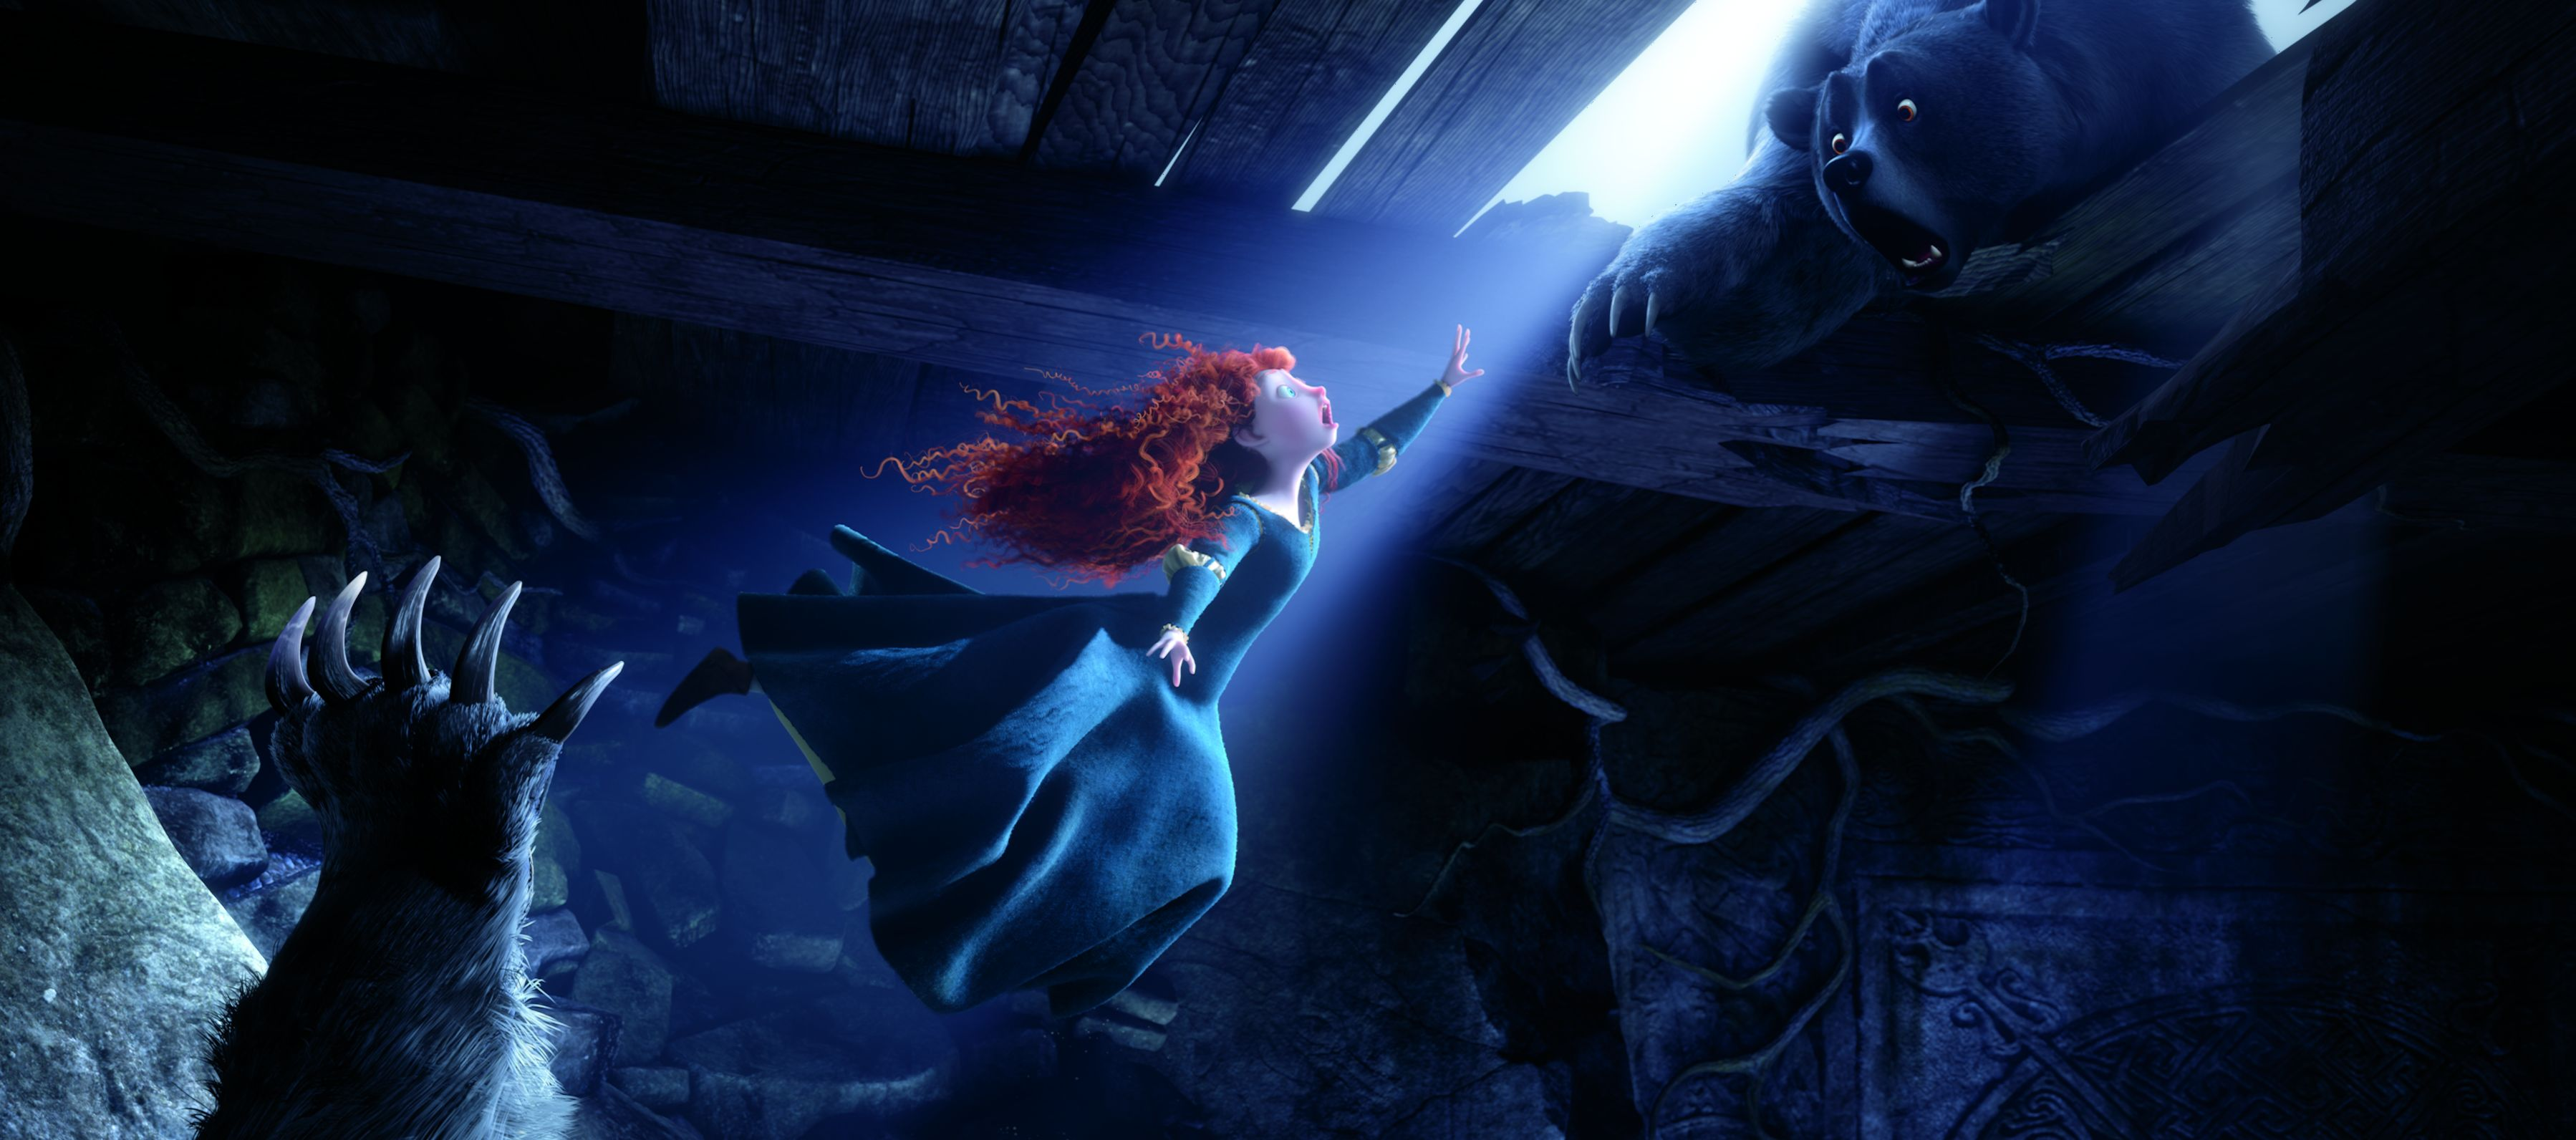 Merida falls as the bear tries to grab her hand in Brave